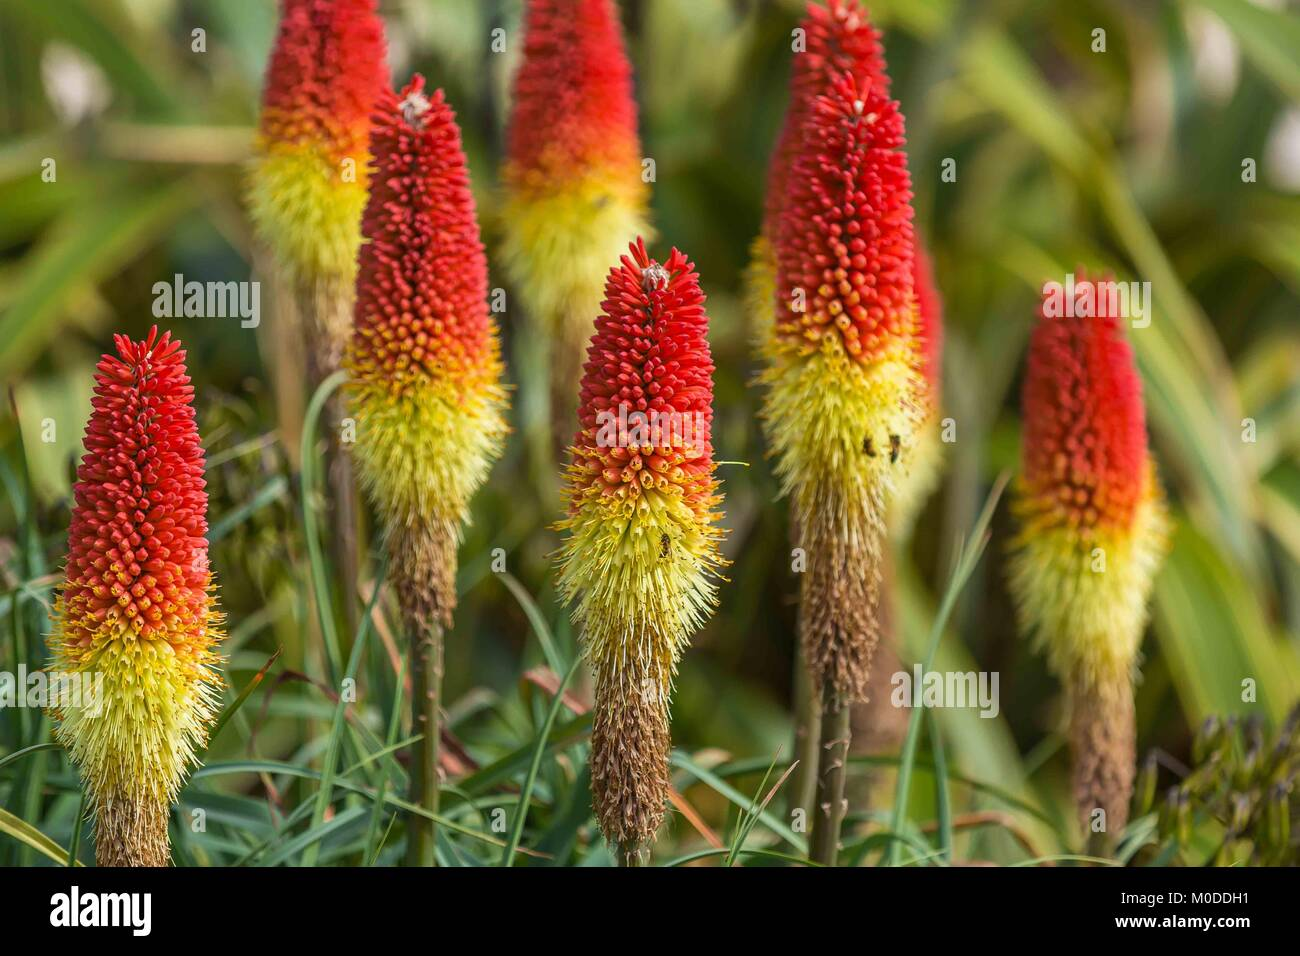 Yellow and red red hot pokers displaying wonderful coloured flowers. - Stock Image